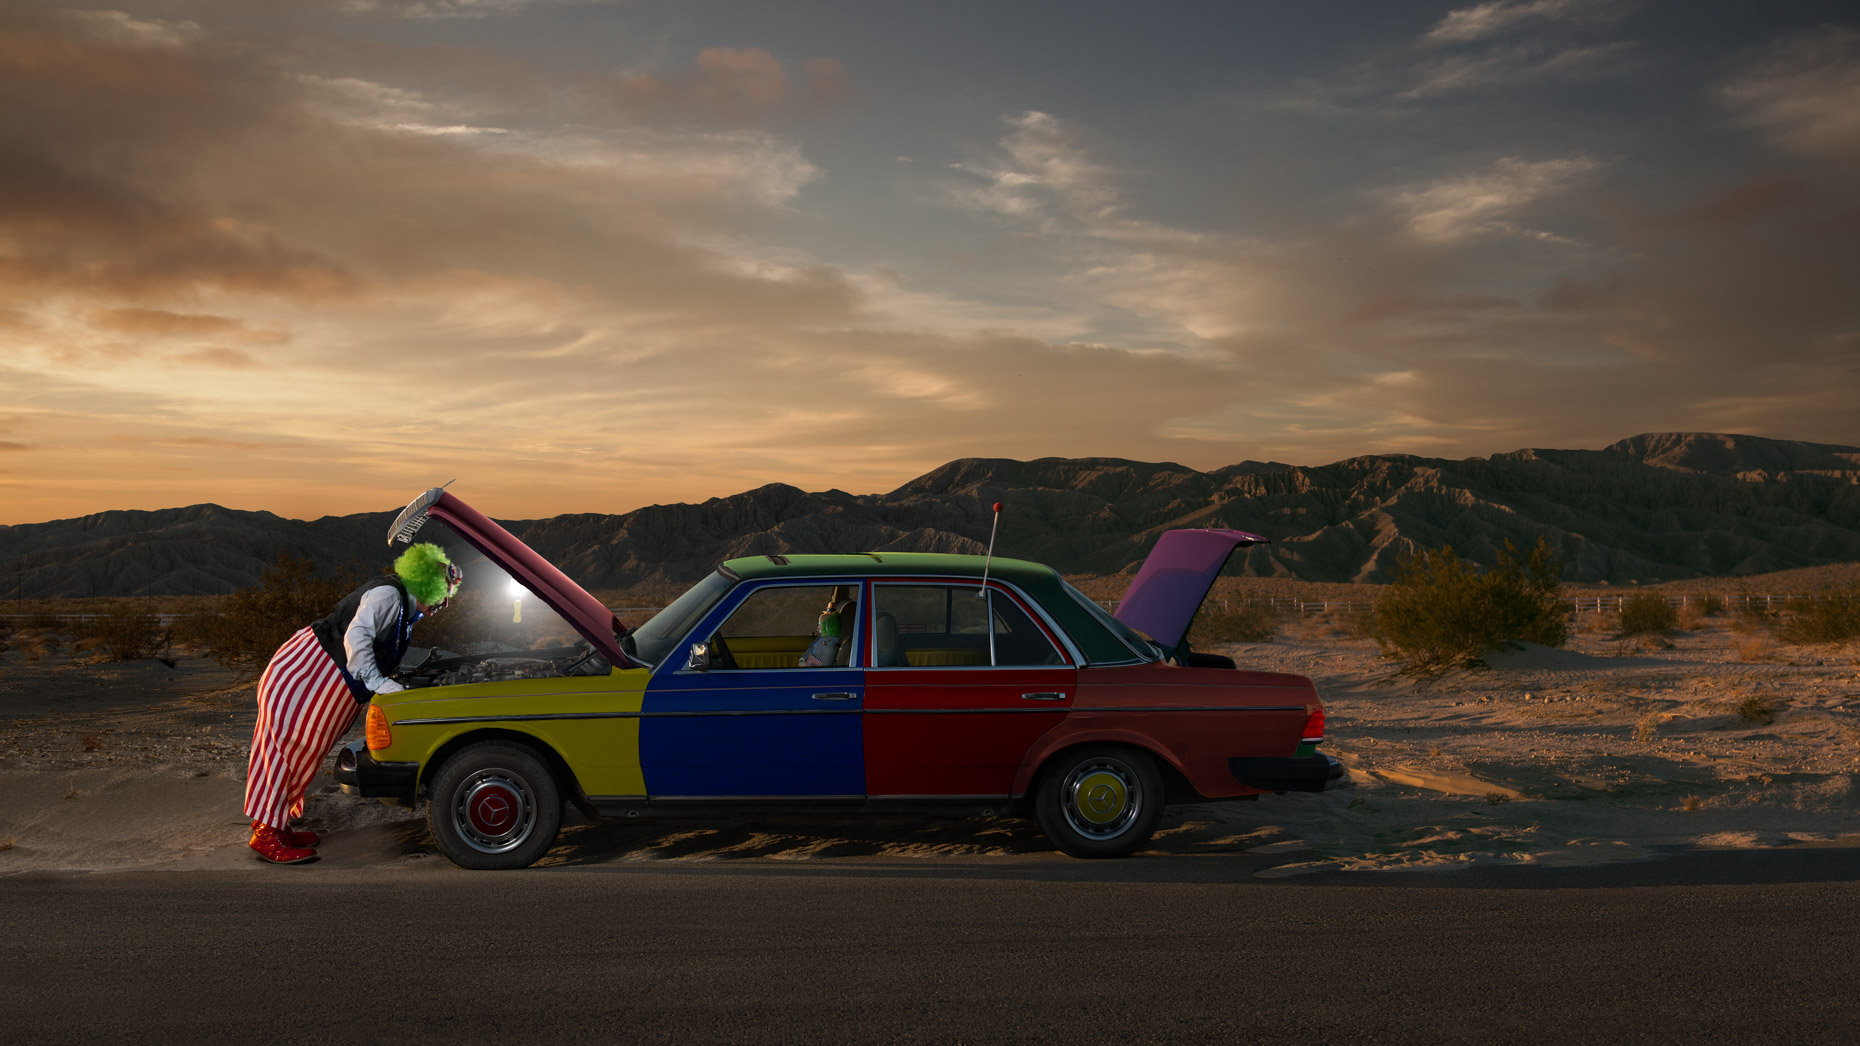 clown-car-mojave-desert